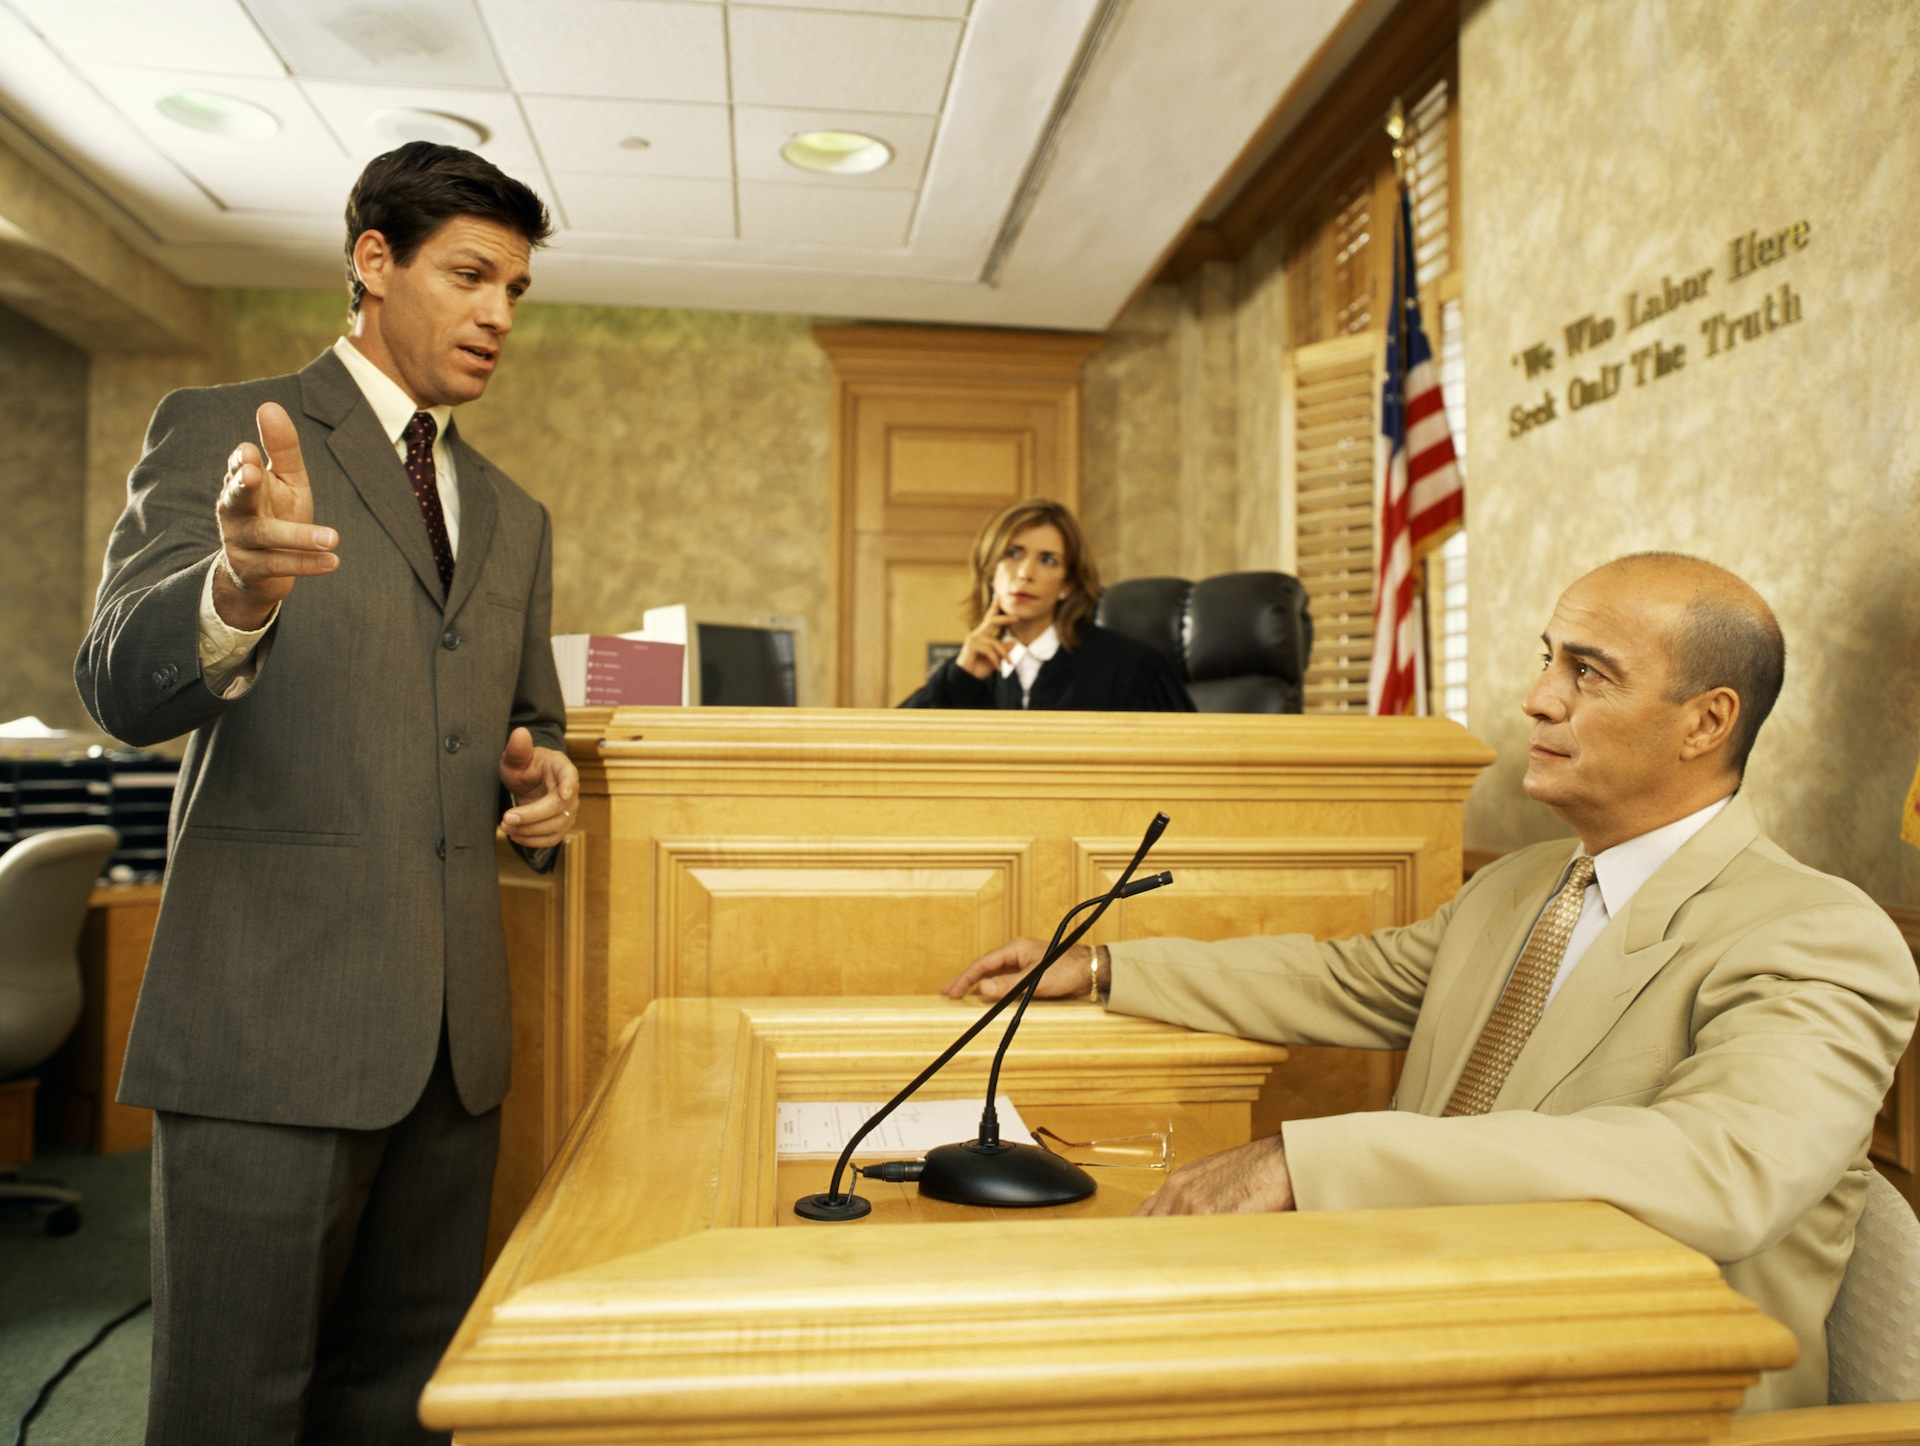 Male-lawyer-examine-civilianreduced.jpg